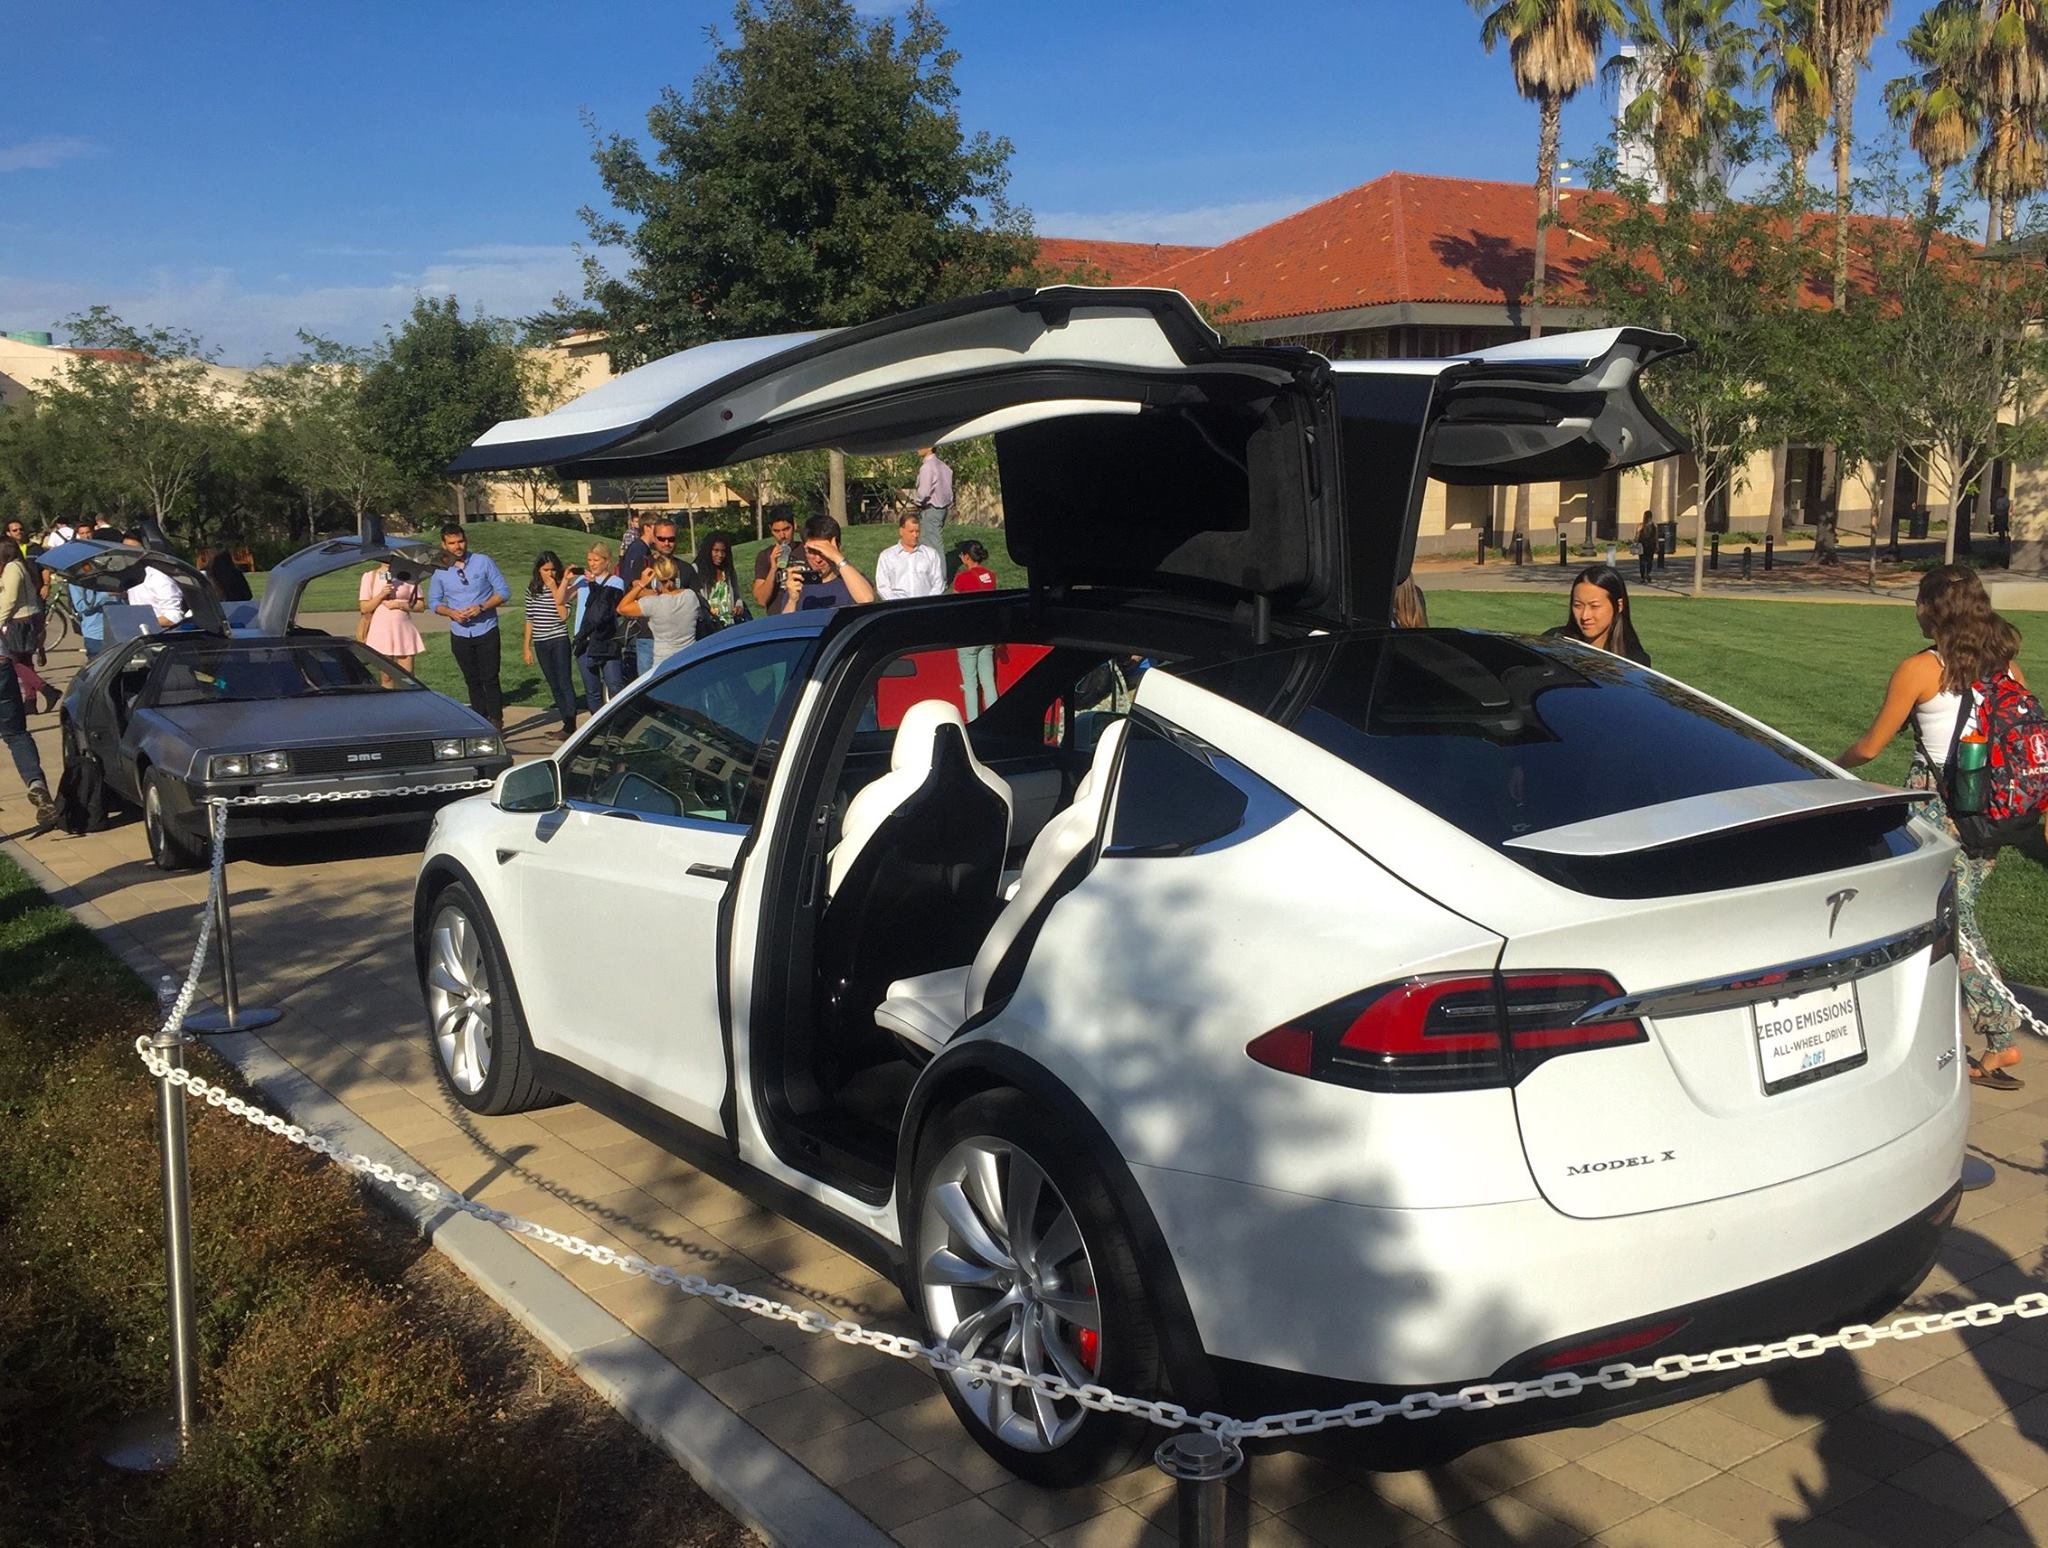 Delorean-Gullwing-vs-Tesla-Model-X-Falcon-Wing